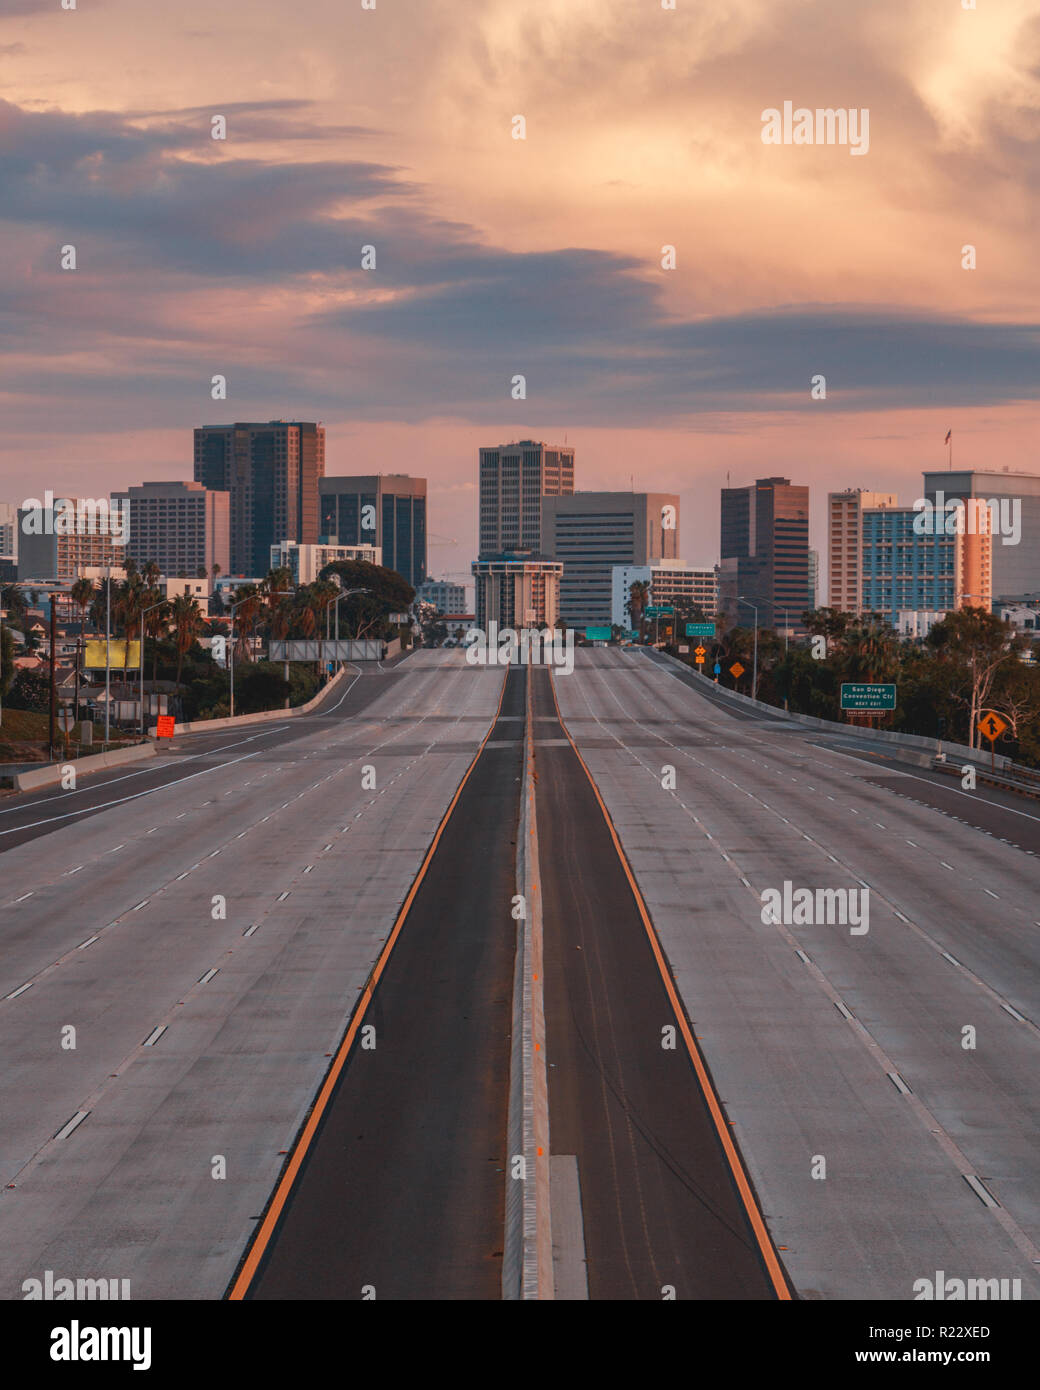 Vertical view of San Diego, California, USA Skyline with empty freeway in foreground. The 5 freeway travels most of the coast of the western united st Stock Photo